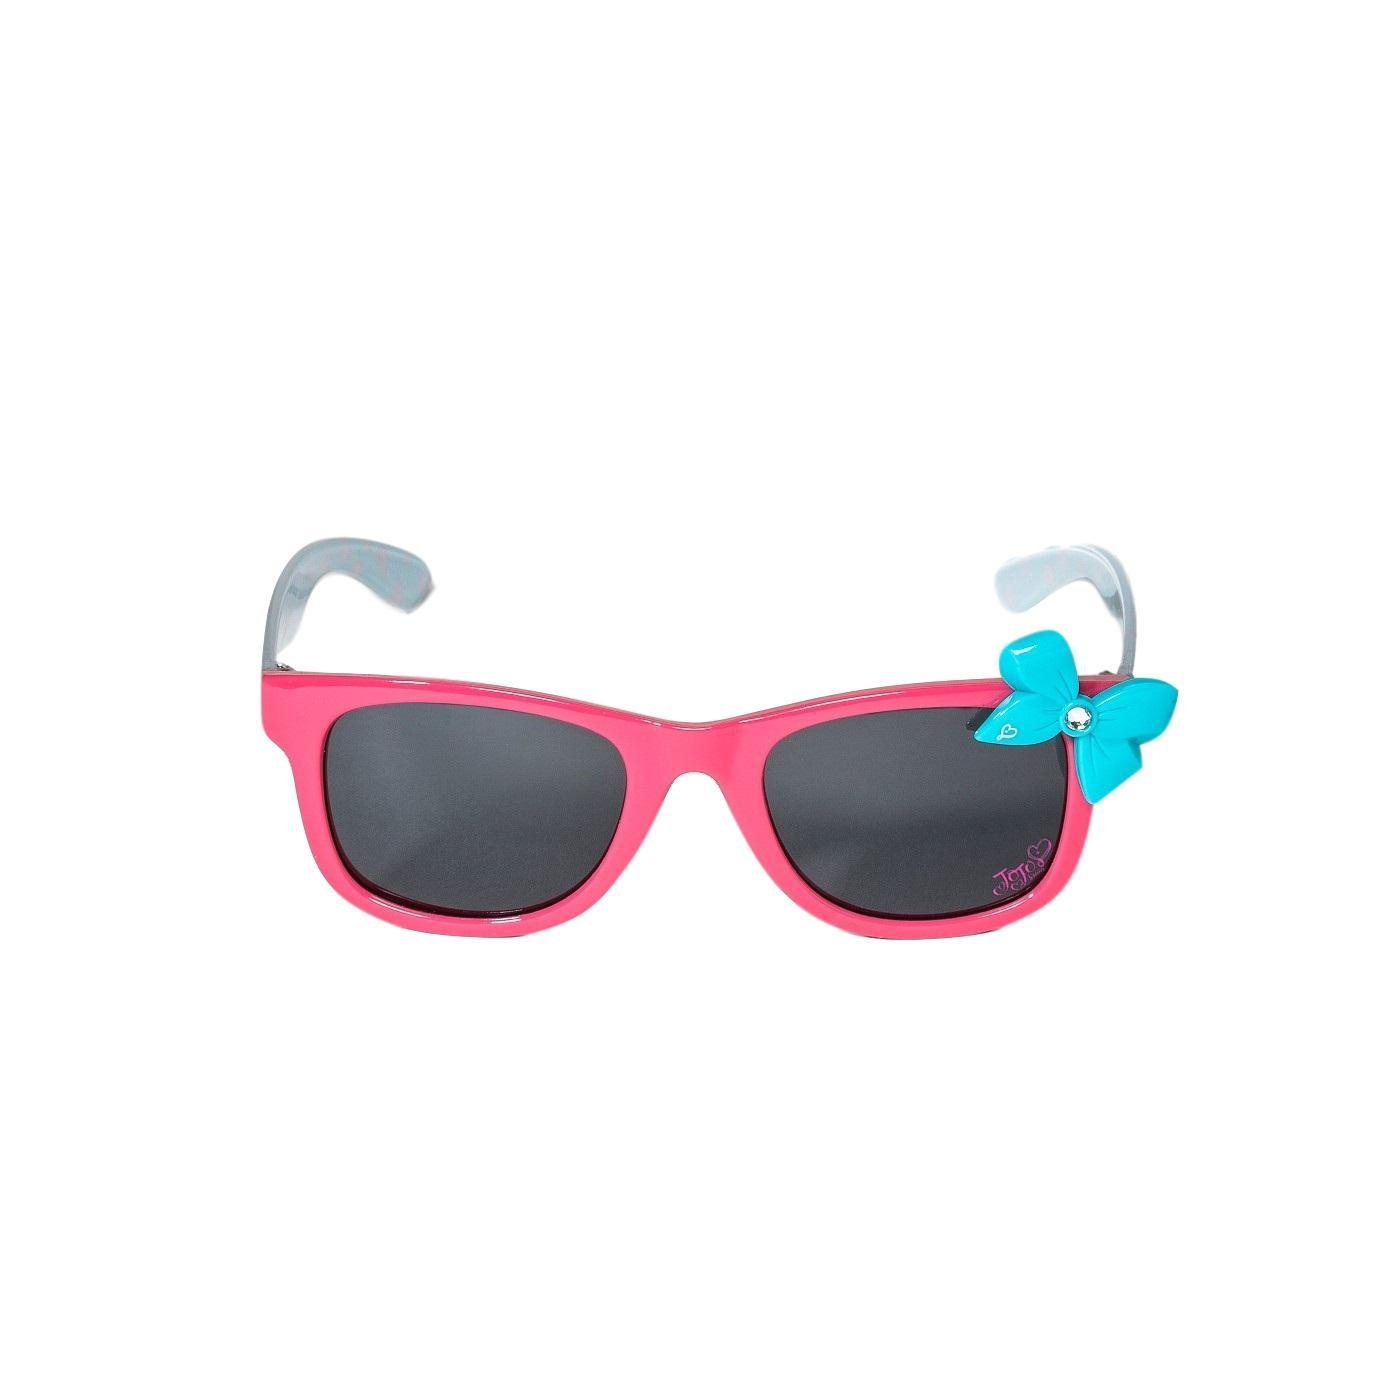 c1f264c47d63 Get Quotations · Jojo Siwa Kids Sunglasses for Girls ages 8-12 UV Protection  Pink